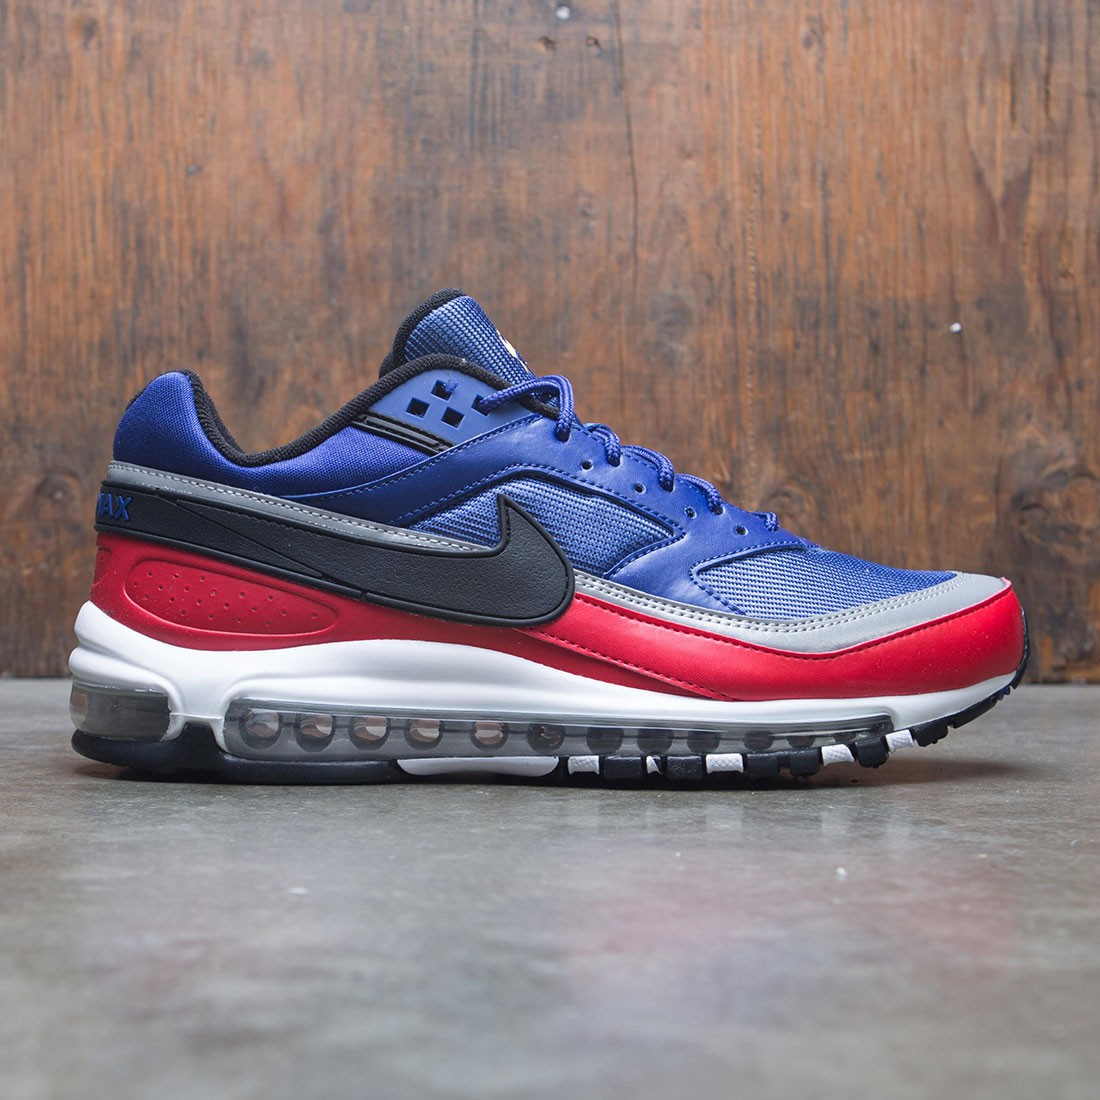 revendeur cfdf9 4c37f Nike Men Air Max 97 / Bw (deep royal blue / black-university red)